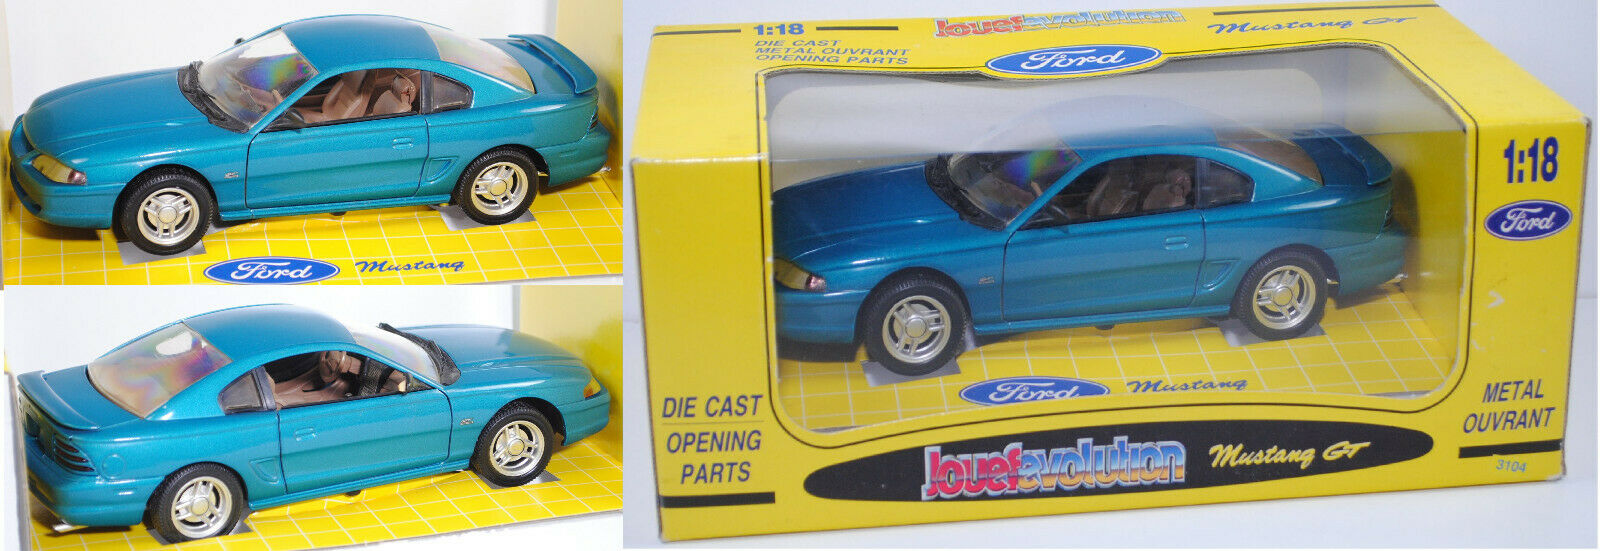 Revell 3104 Ford Mustang GT Coupé deep forest green, 1 18